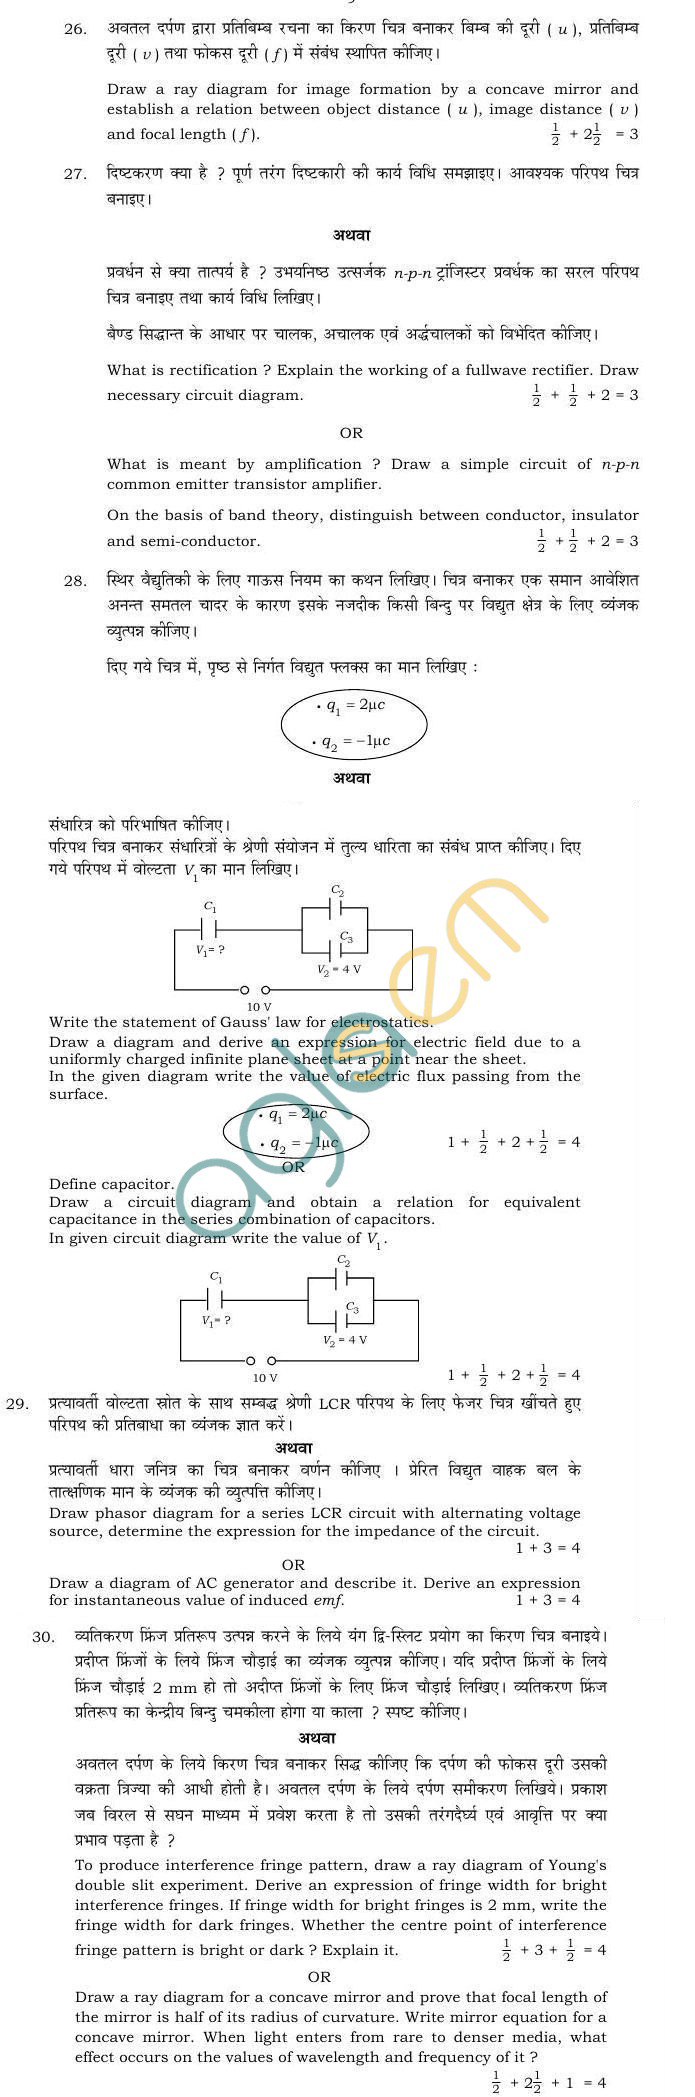 Rajasthan Board Sr. Secondary Physics Question Paper 2013